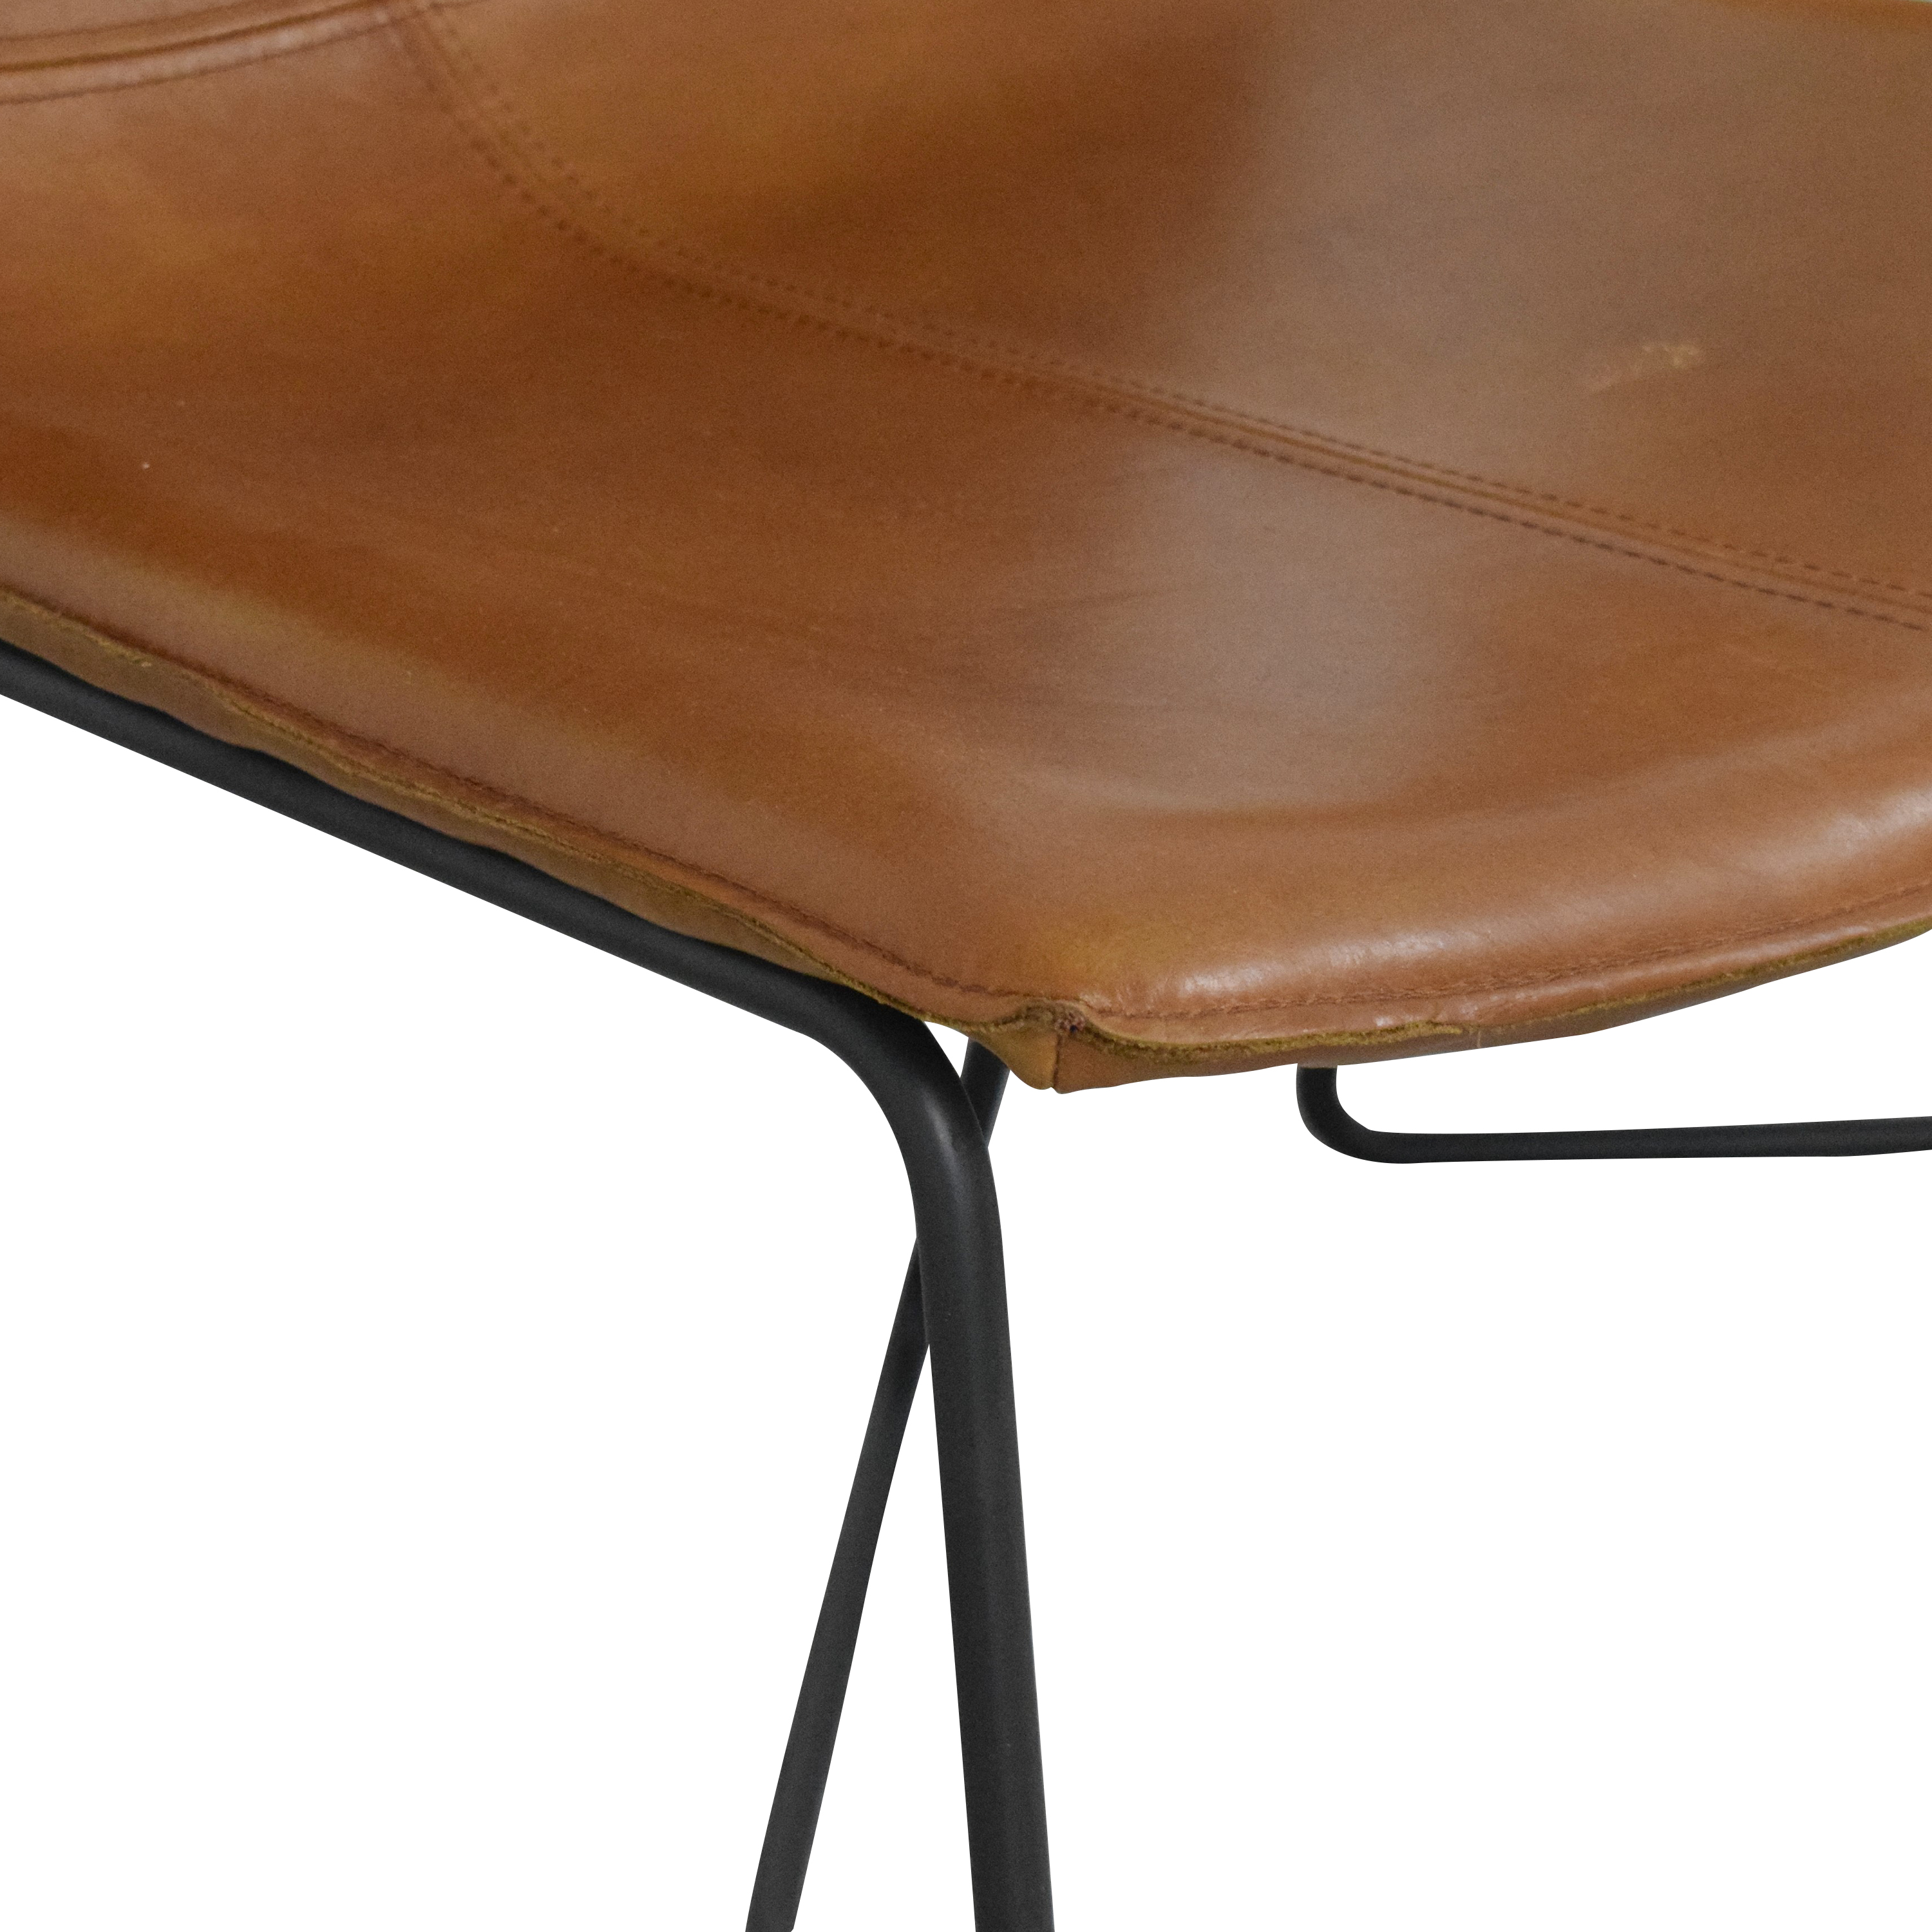 West Elm West Elm Slope Dining Chairs for sale